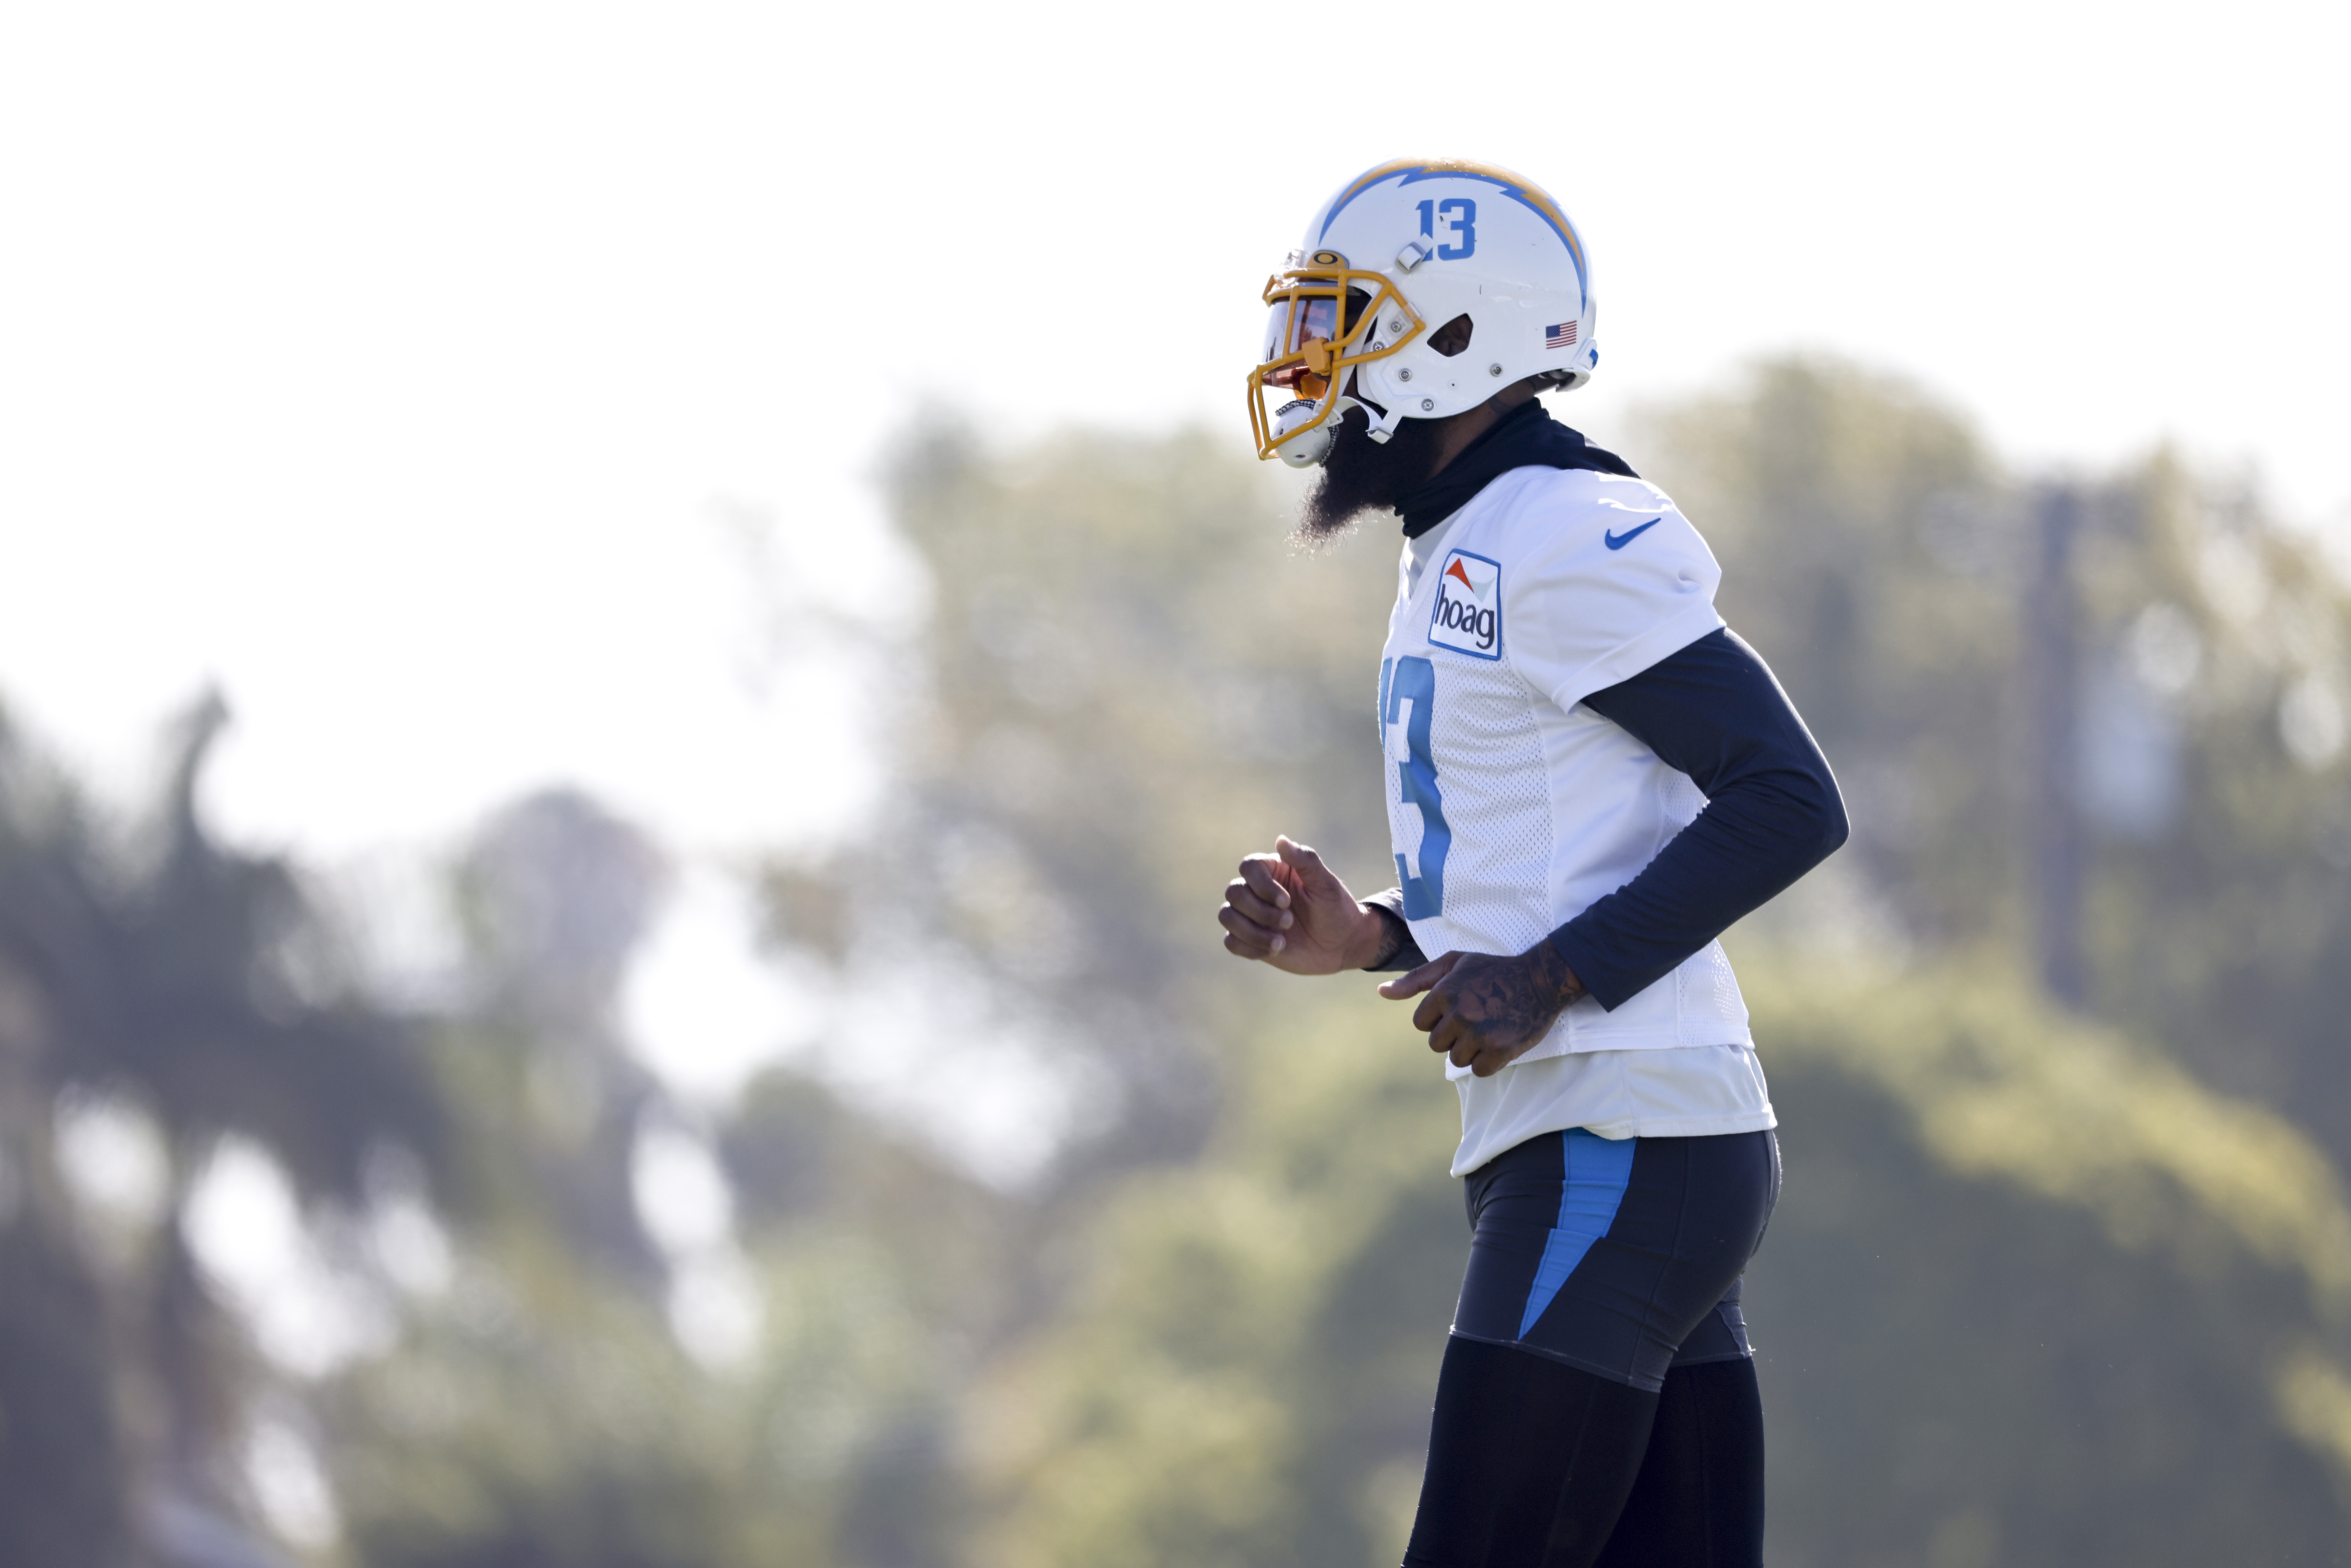 Keenan Allen #13 of the Los Angeles Chargers practices during Los Angeles Chargers Training Camp at Jack Hammett Sports Complex on July 29, 2021 in Costa Mesa, California.